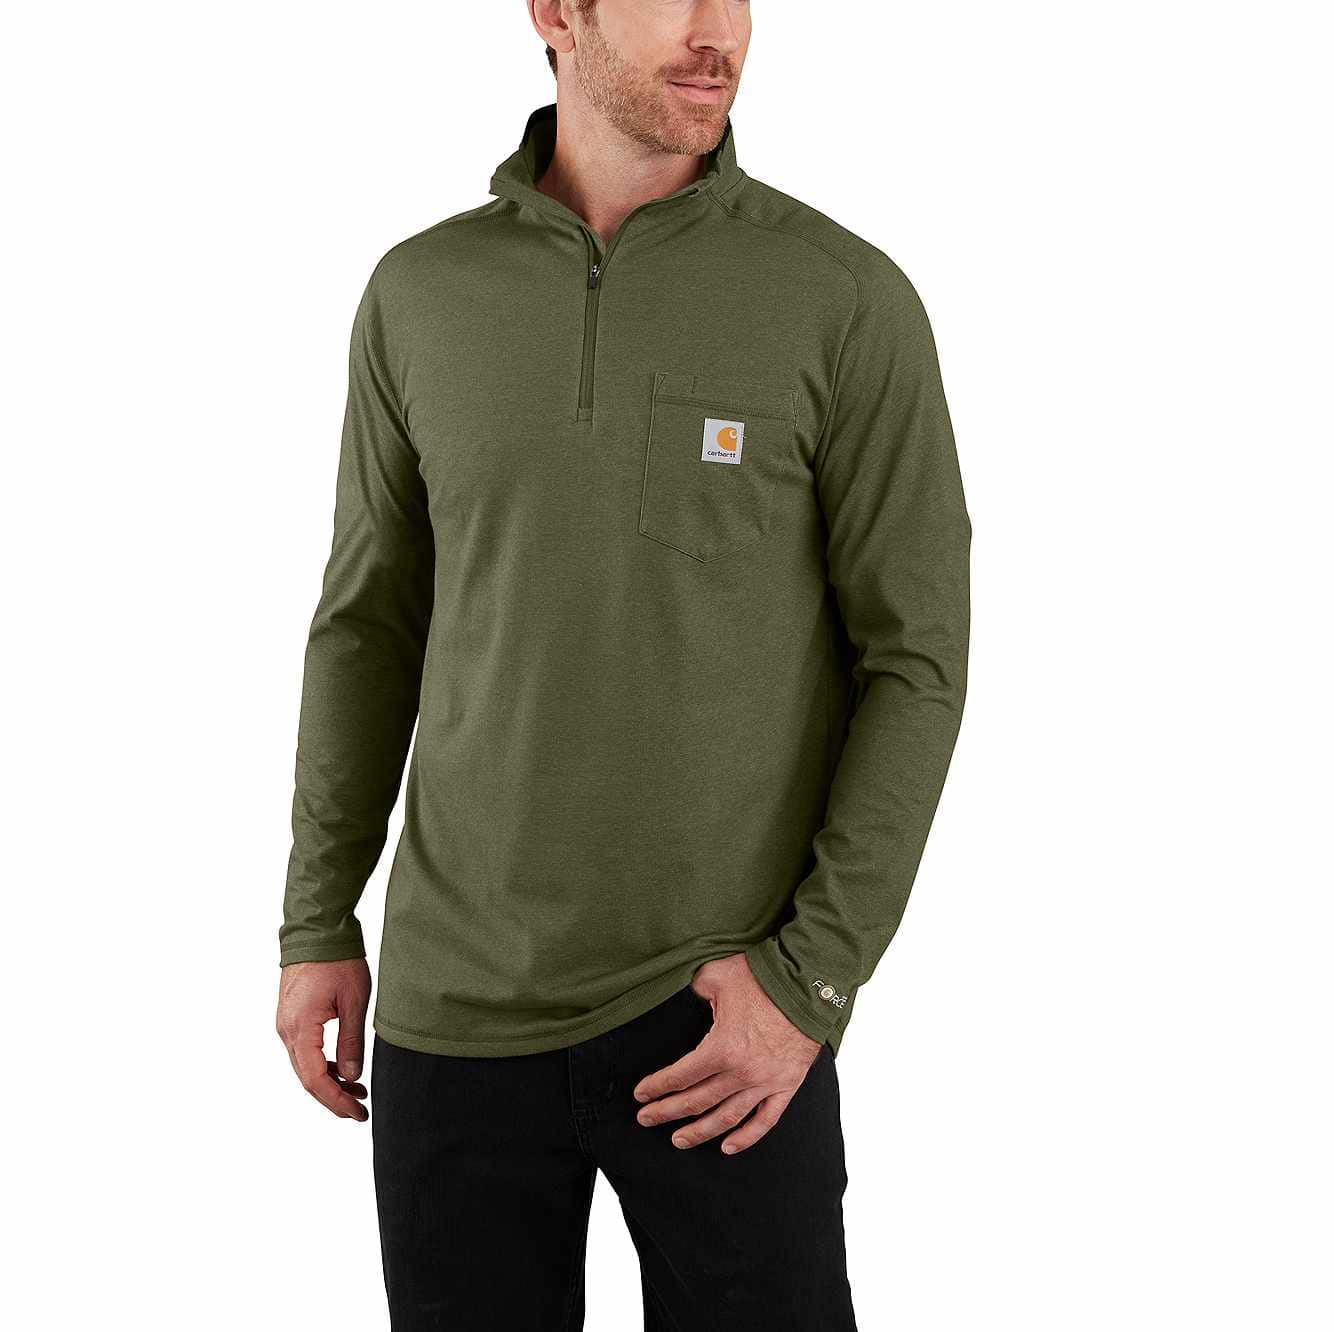 Picture of Carhartt Force® Relaxed Fit Long-Sleeve Quarter-Zip Pocket T-Shirt in Moss Heather